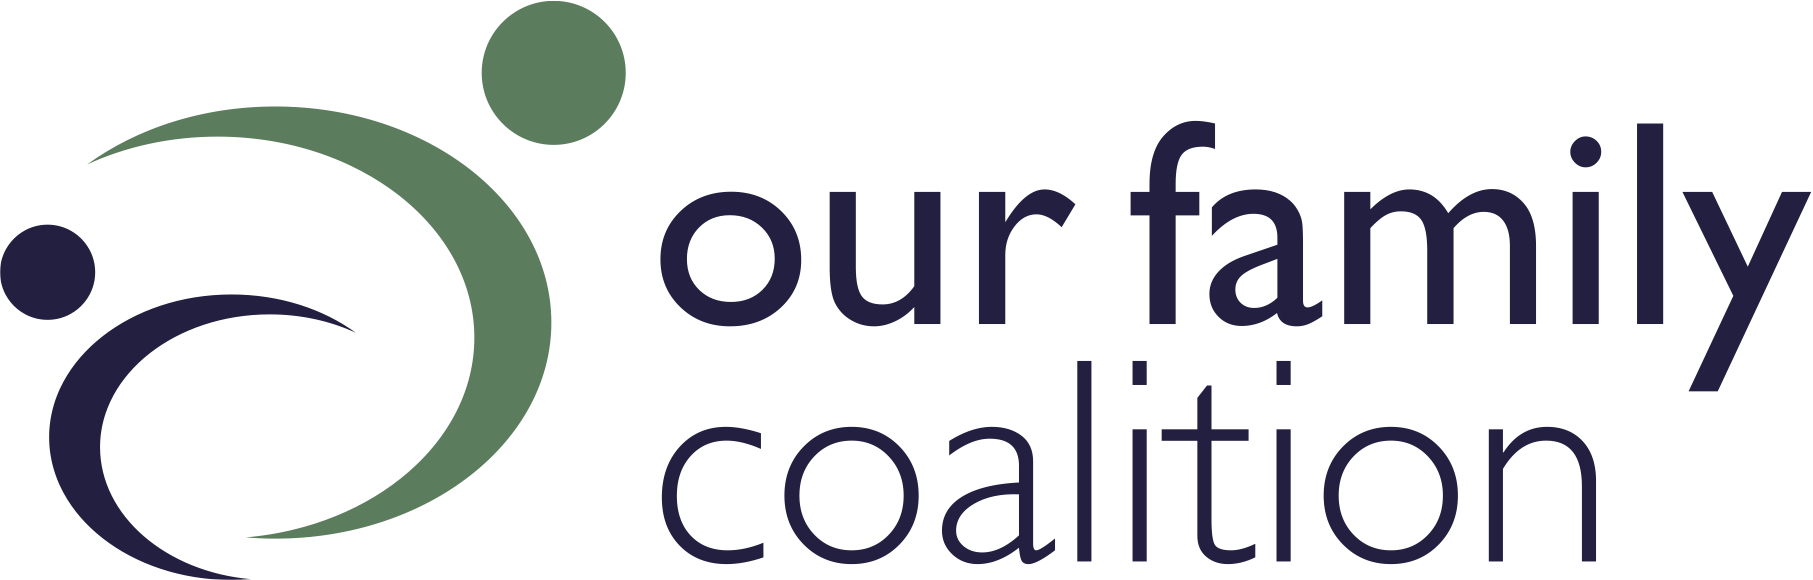 Our-Family-Coalition-Logo_-High-Res